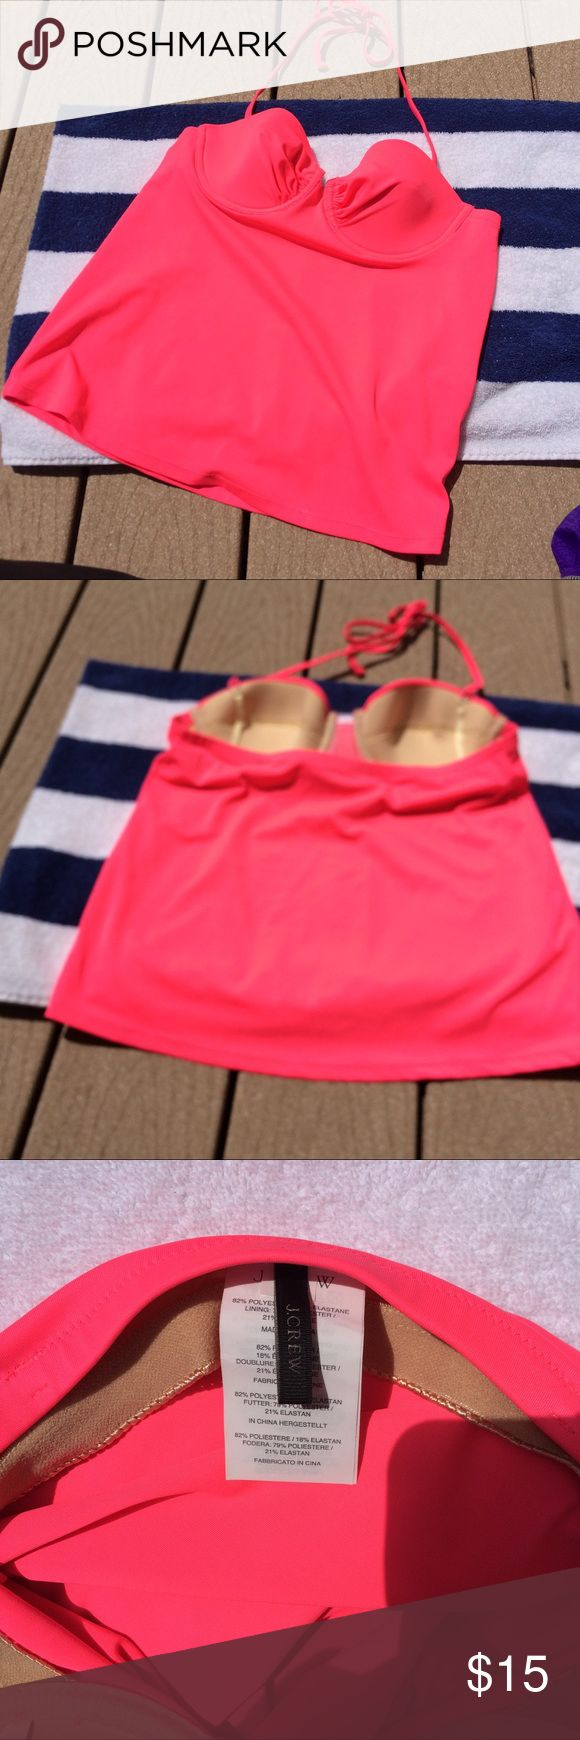 J.Crew Pink Tankini Very cute J.Crew tankini, size 4 in hot pink. Defined cups are not removable not padded. Adjustable halter string top. Very good condition, no noticeable holes, tears, piling or staining. *Please note that this is a gently used item and may have small defects from wear. I've done my best to describe any and all signs of wear. Any questions, please ask before purchasing, thanks!* J. Crew Swim Bikinis